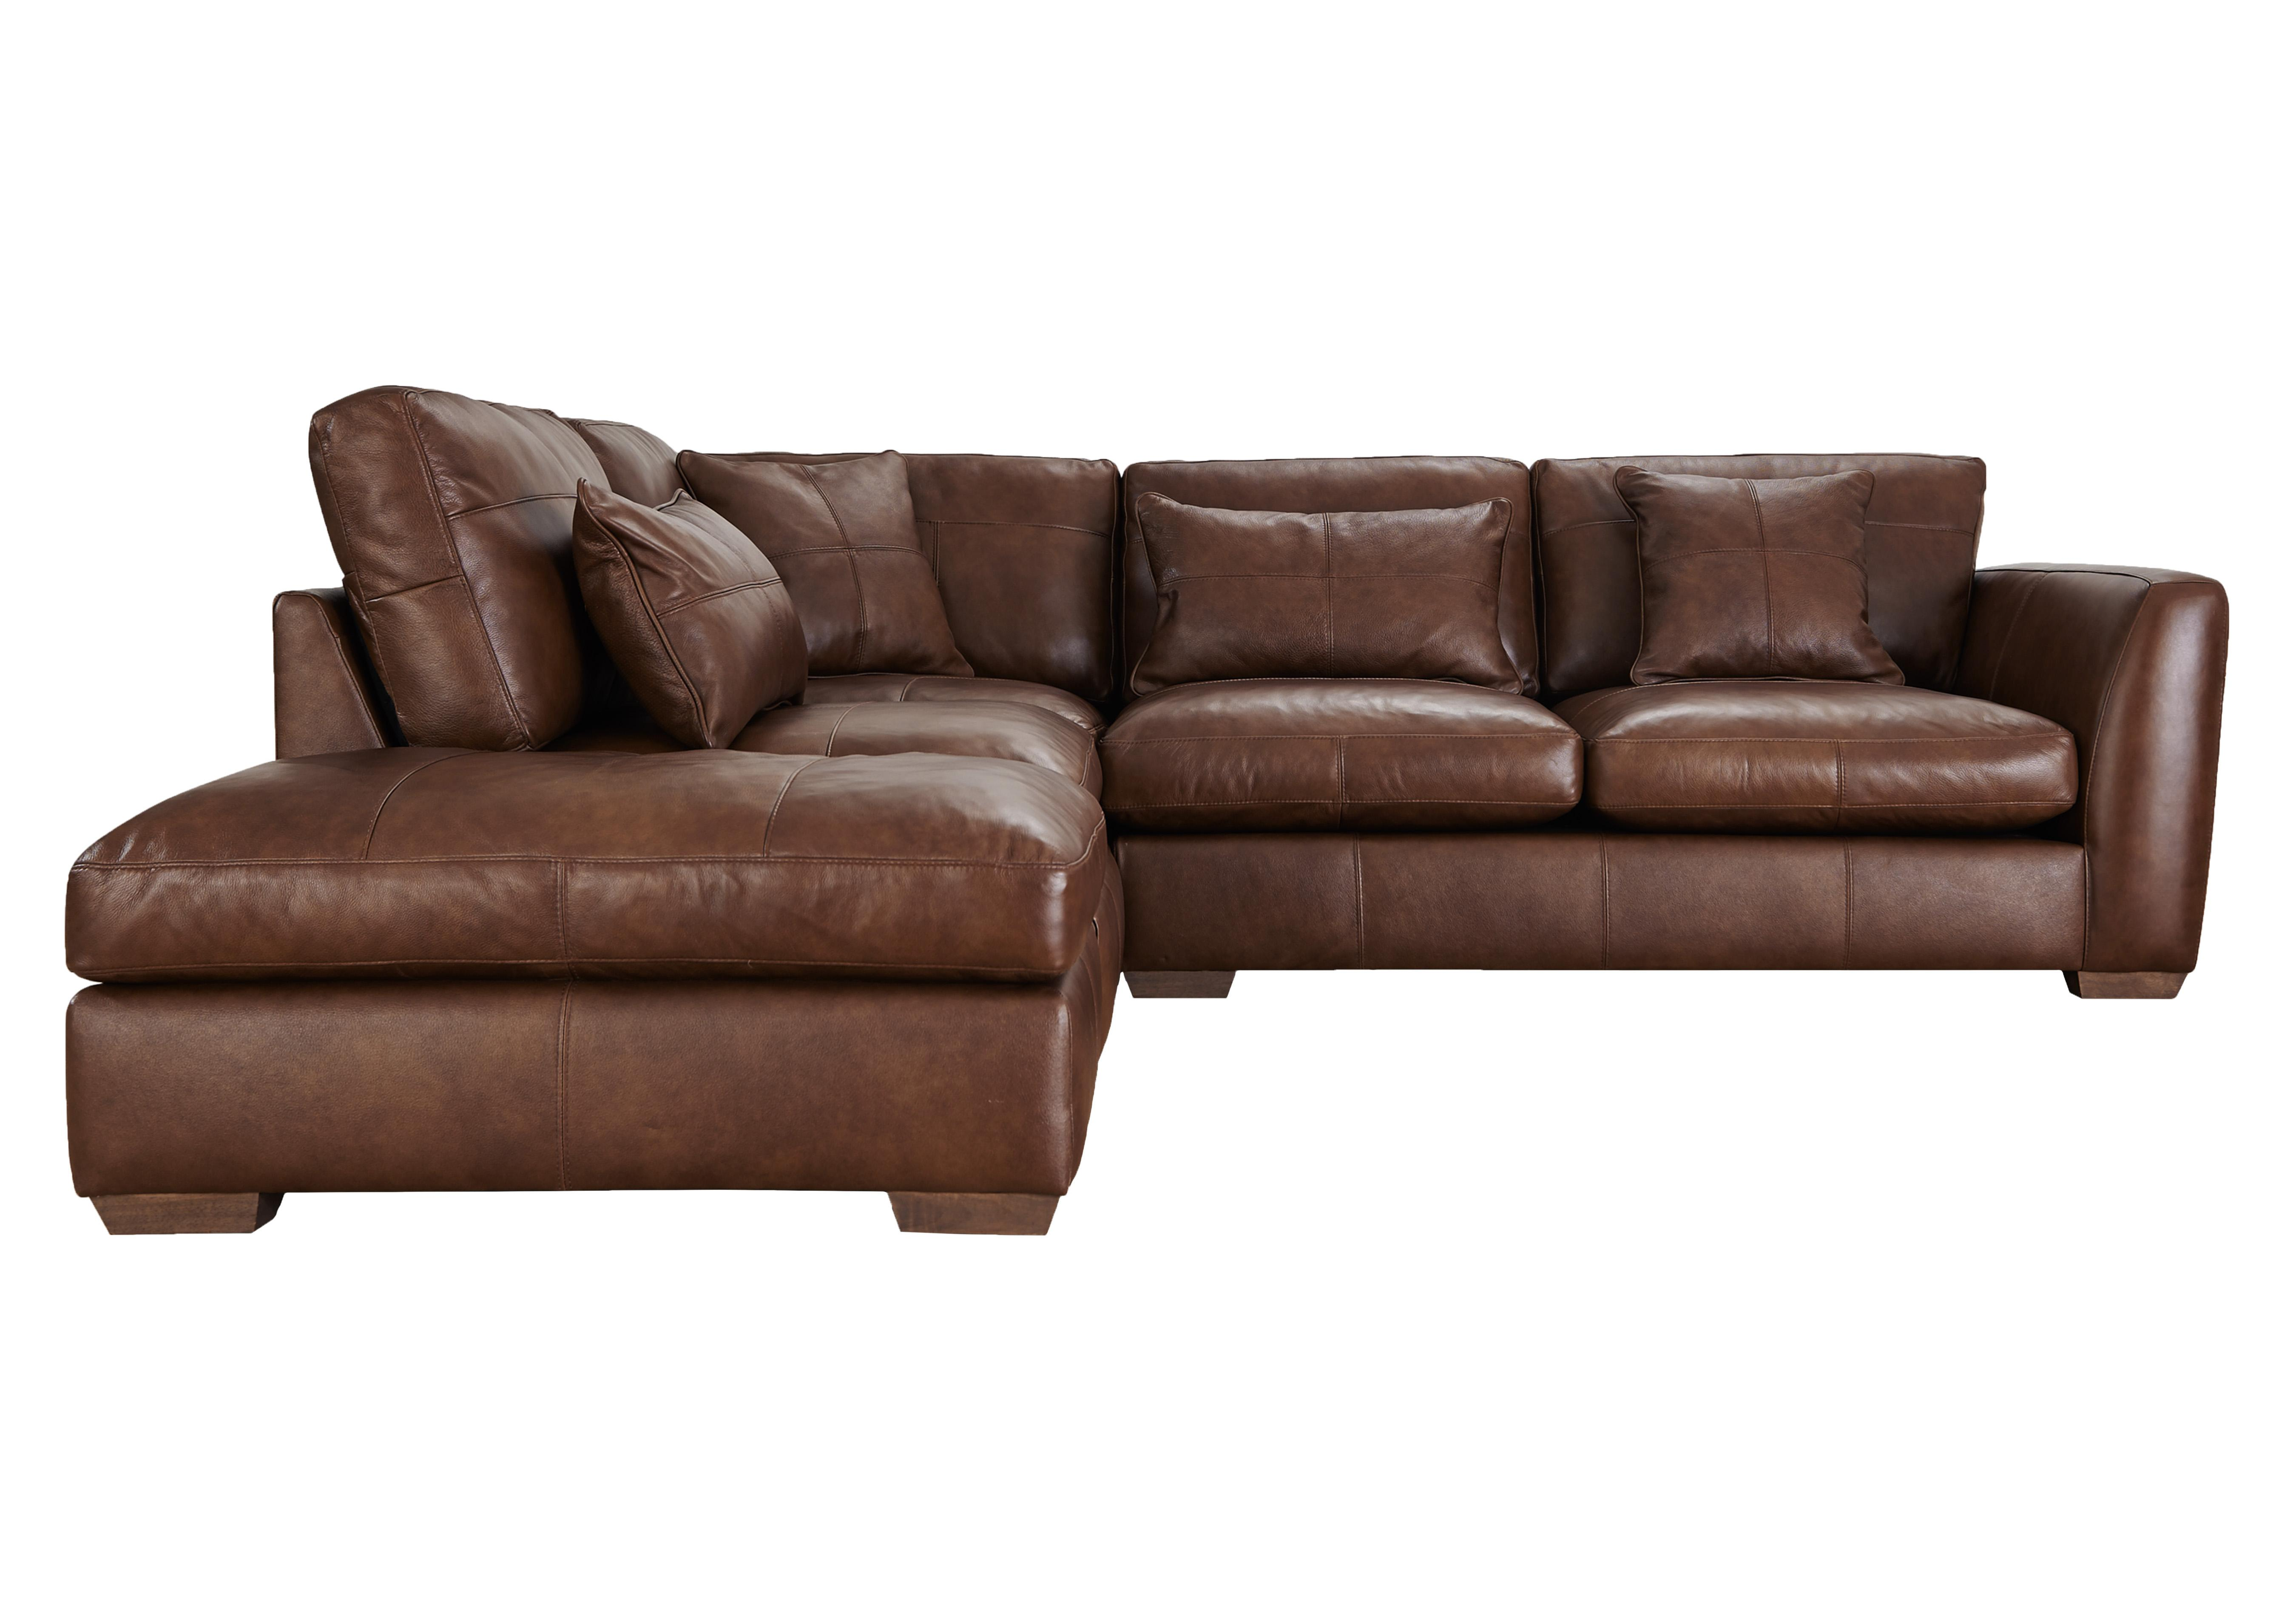 Savannah Leather Corner Sofa - Furniture Village